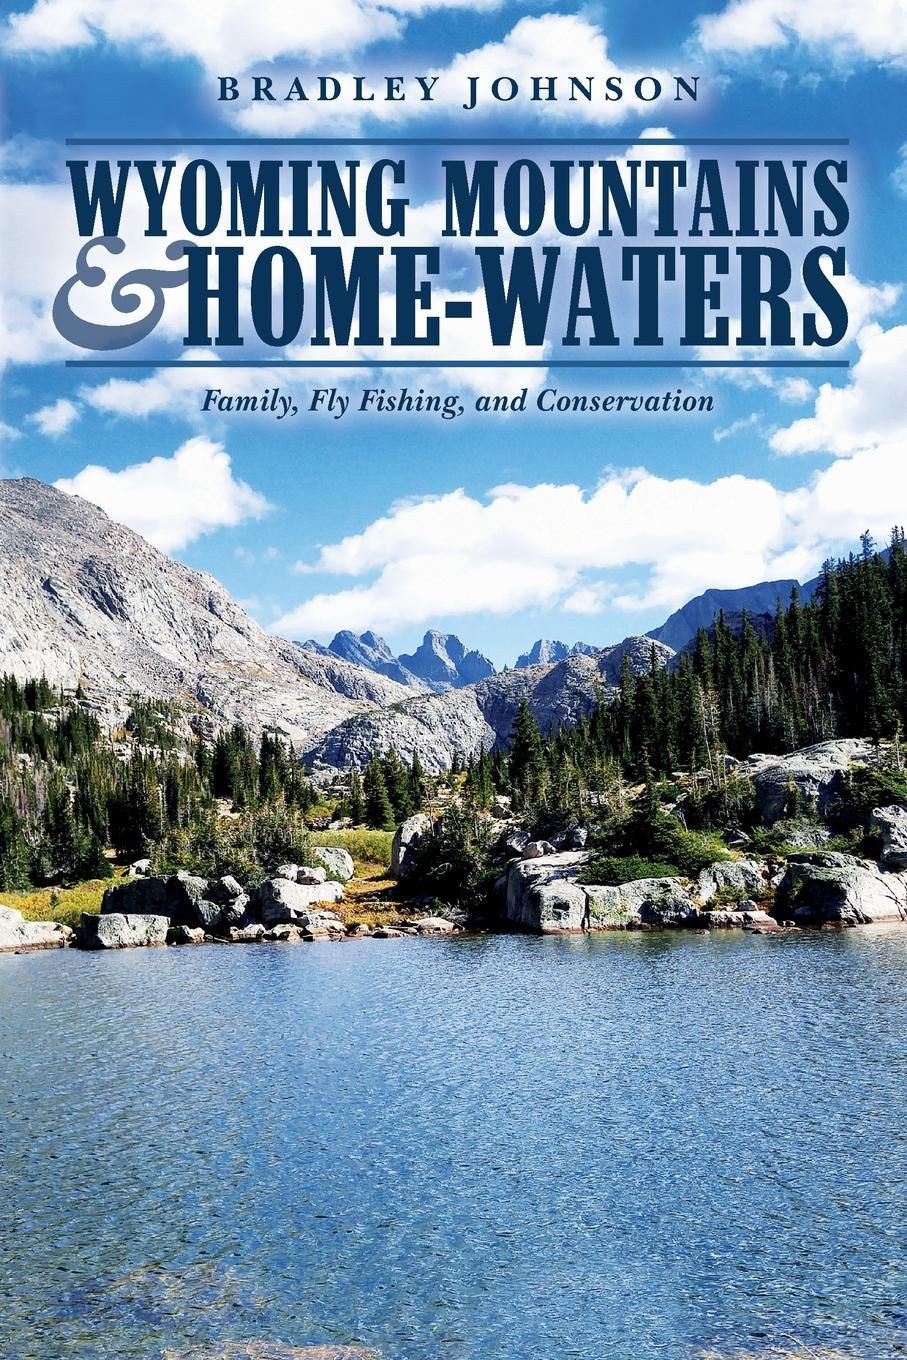 купить Bradley Johnson Wyoming Mountains . Home-waters. Family, Fly Fishing, and Conservation по цене 1539 рублей